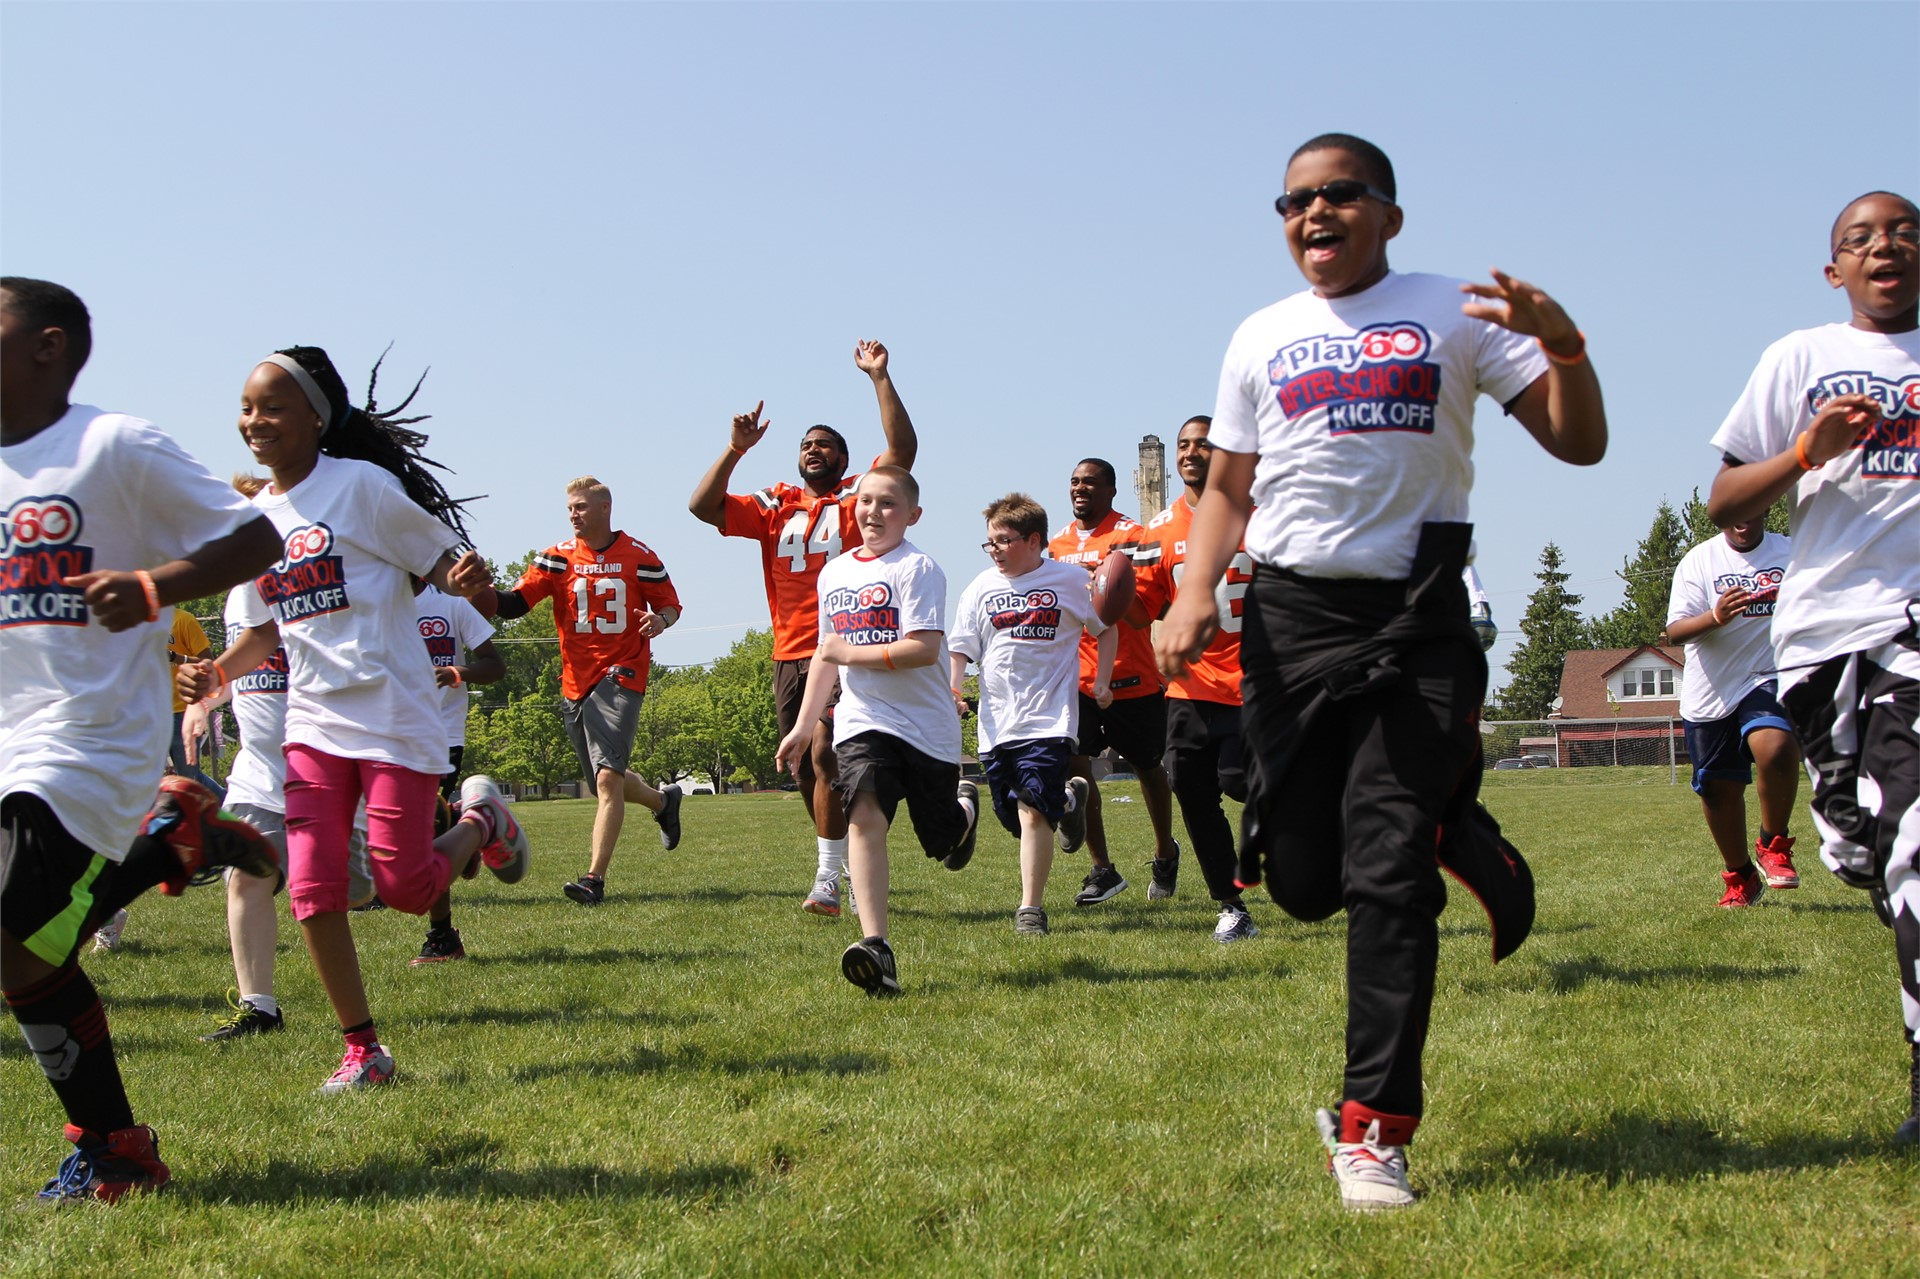 NFL Fuel Up to Play 60 winners running on the Arbor Soccer Field